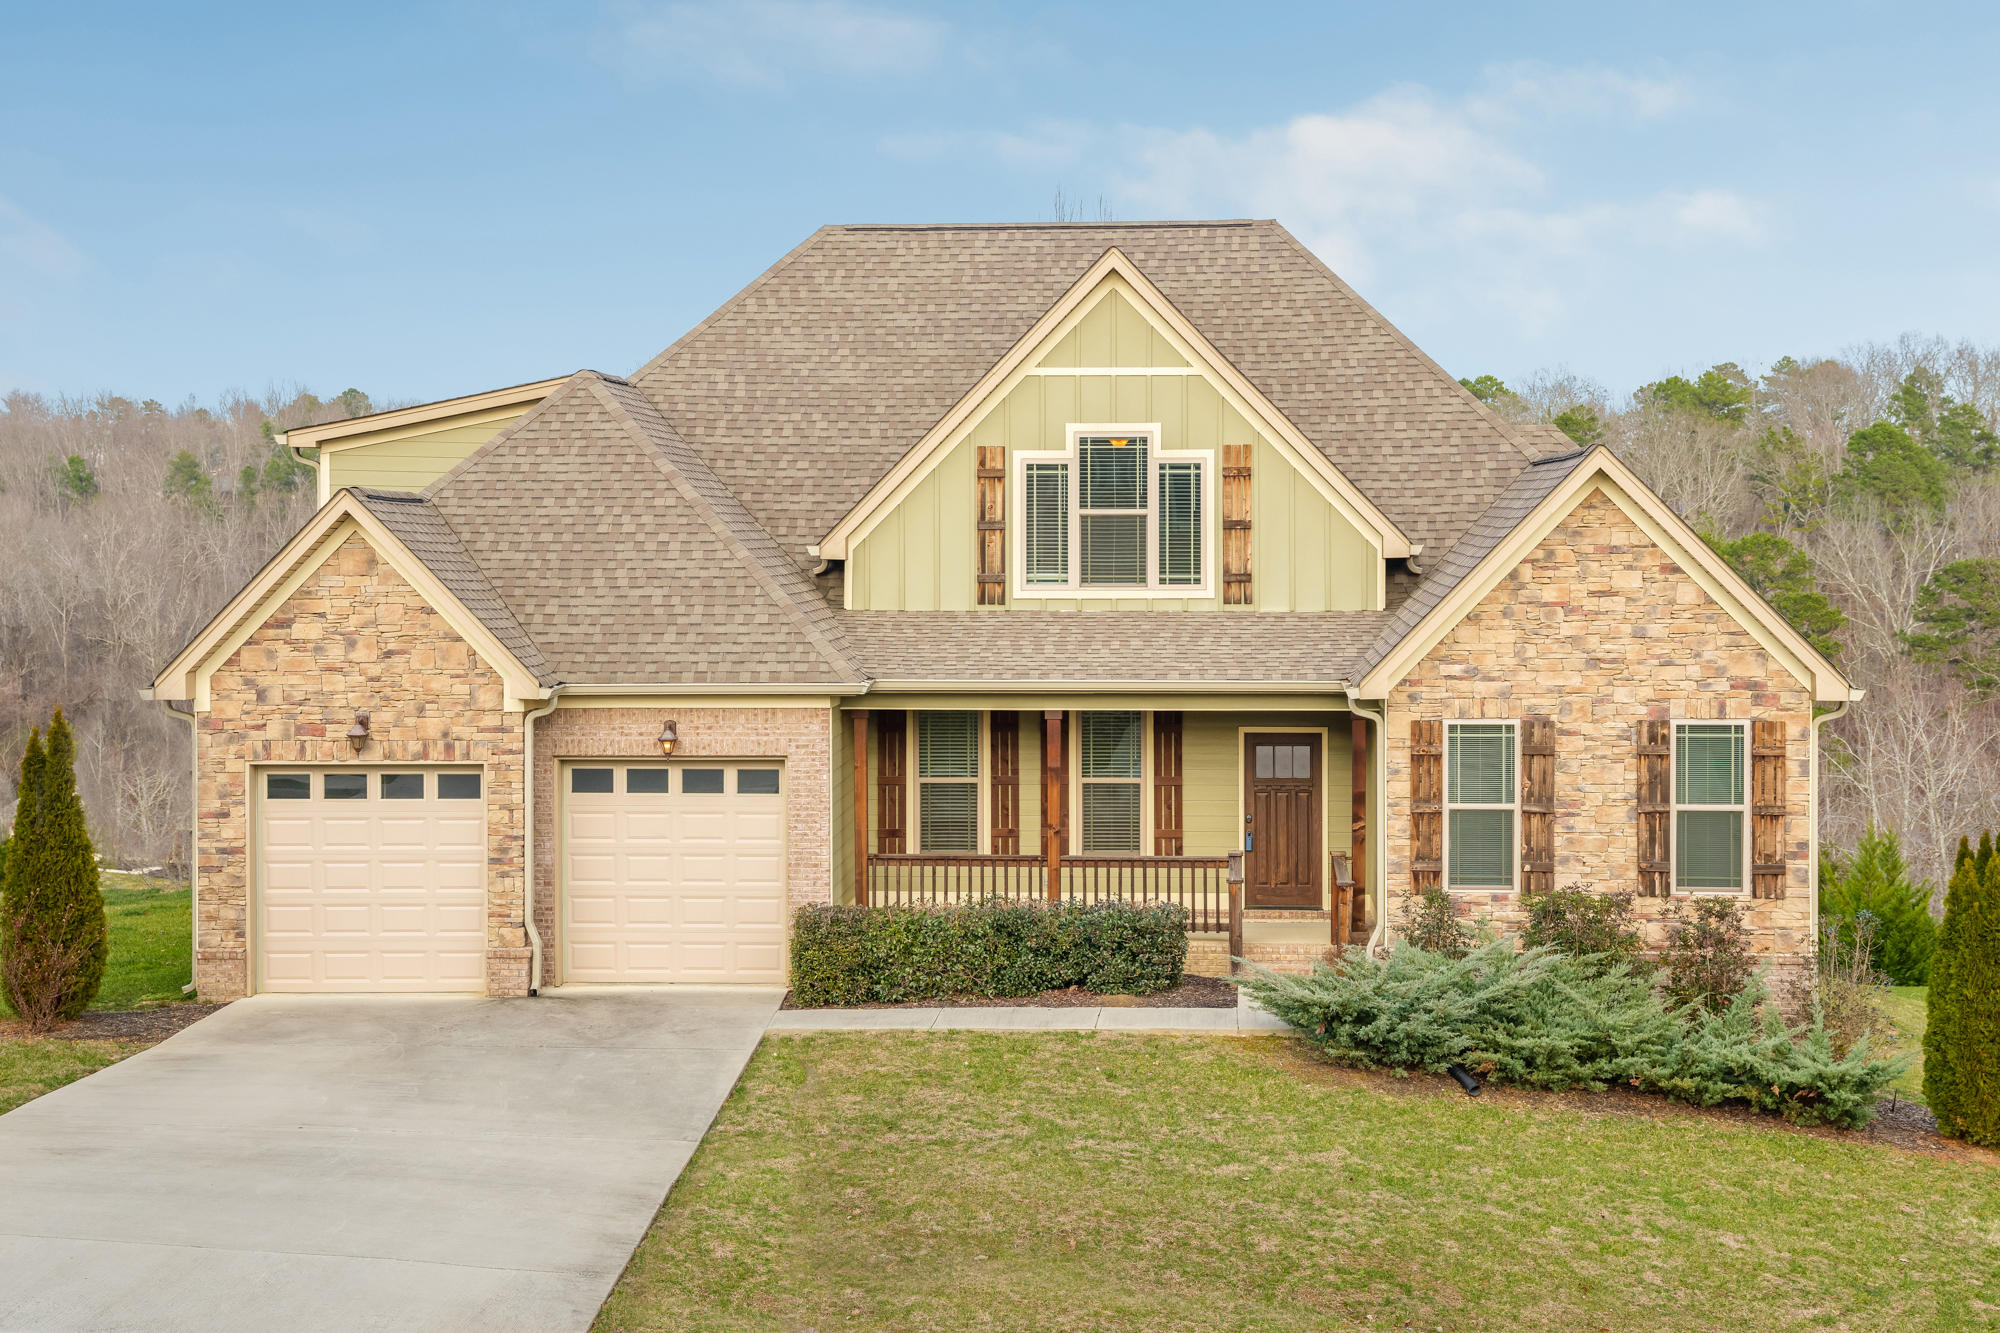 7975  Chianti  Way 37421 - One of Chattanooga Homes for Sale